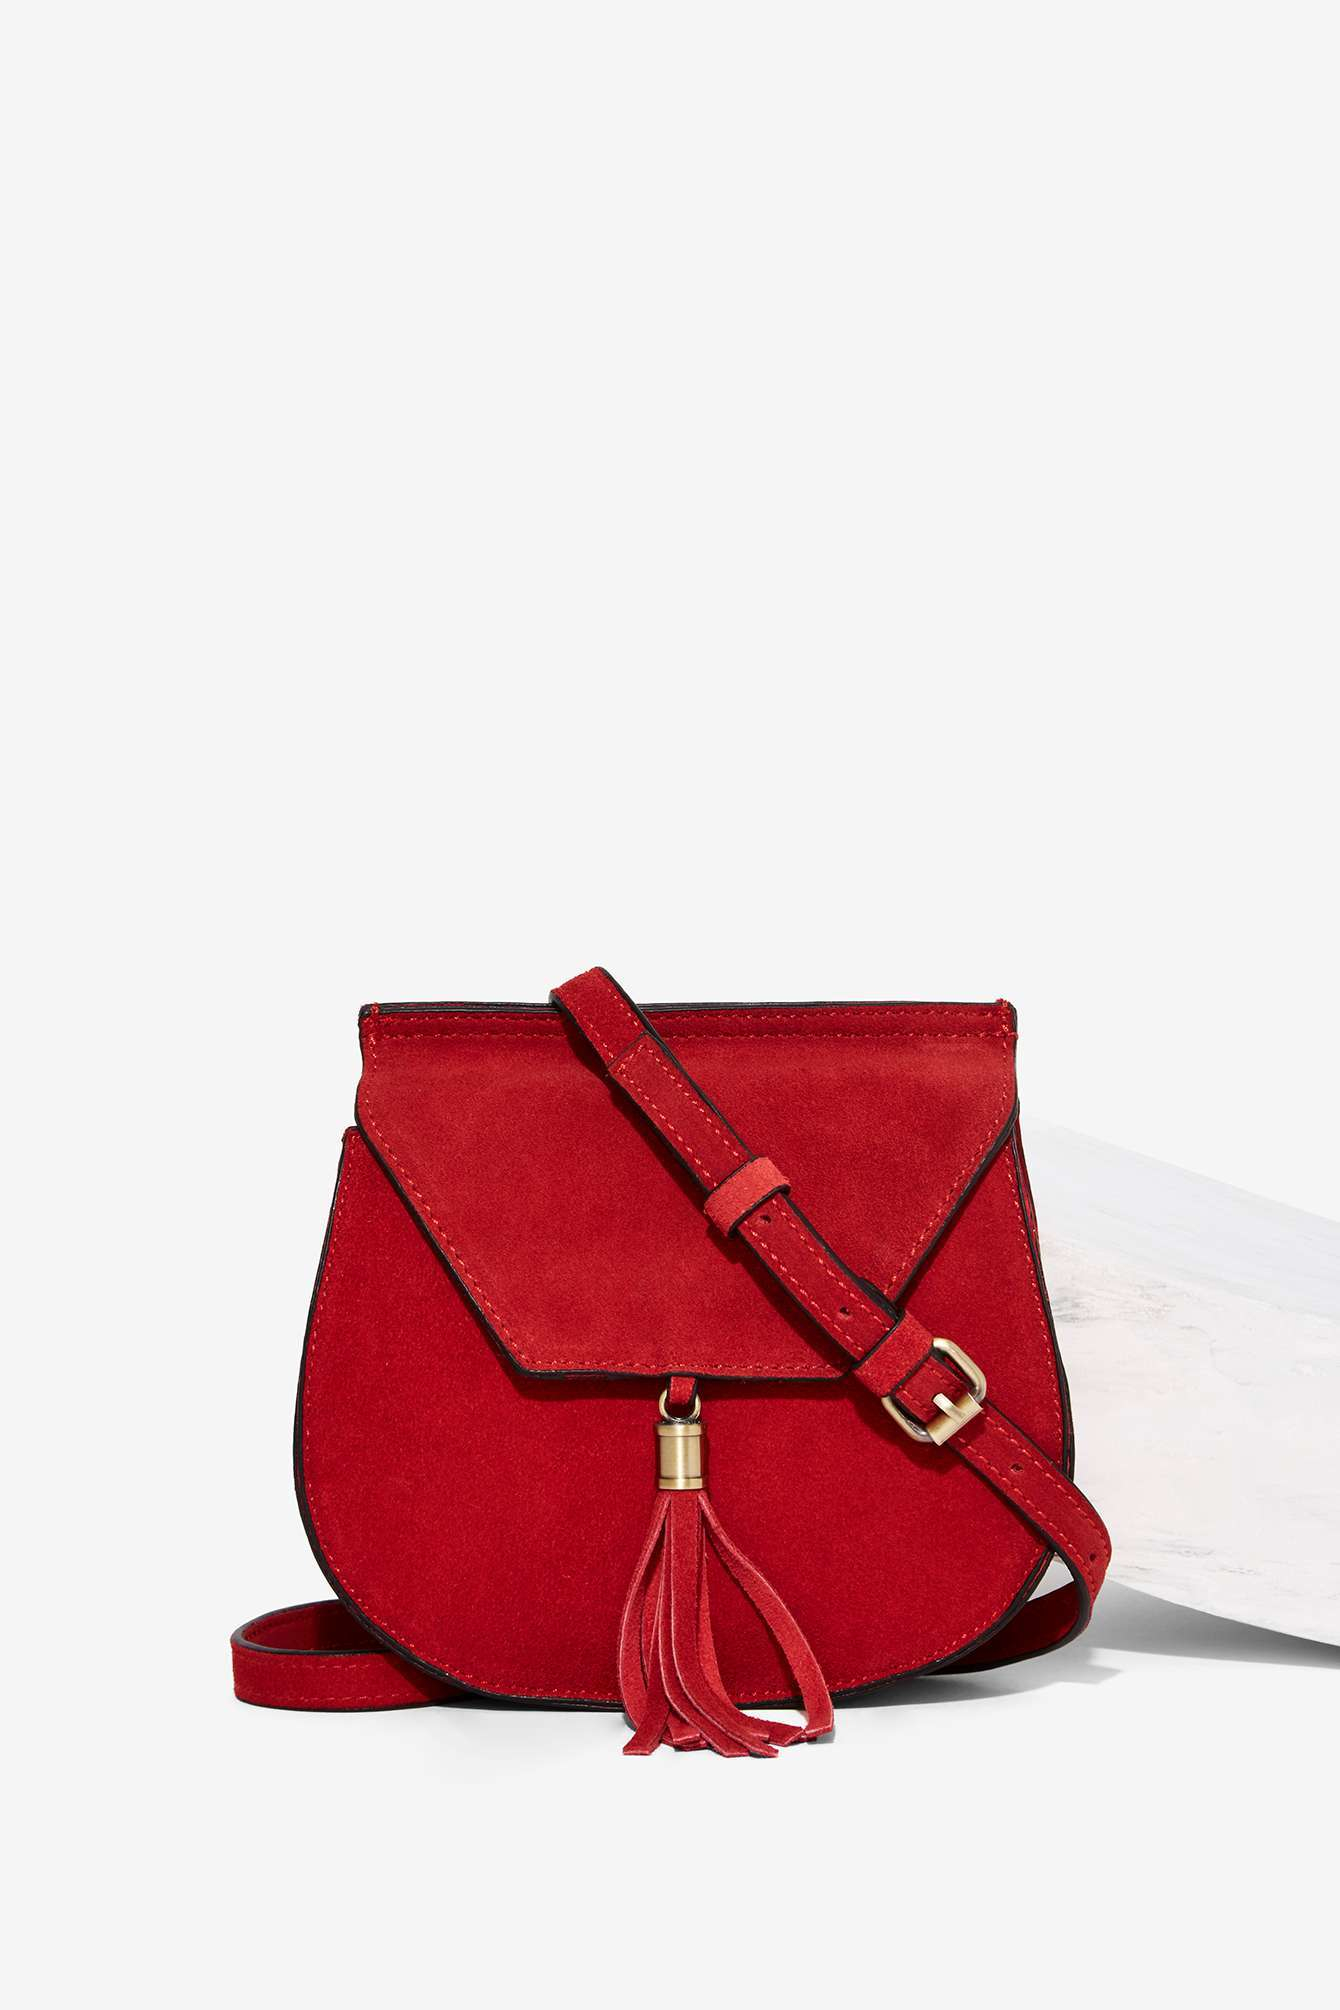 Nila anthony Wild West Suede Bag - Red in Red | Lyst